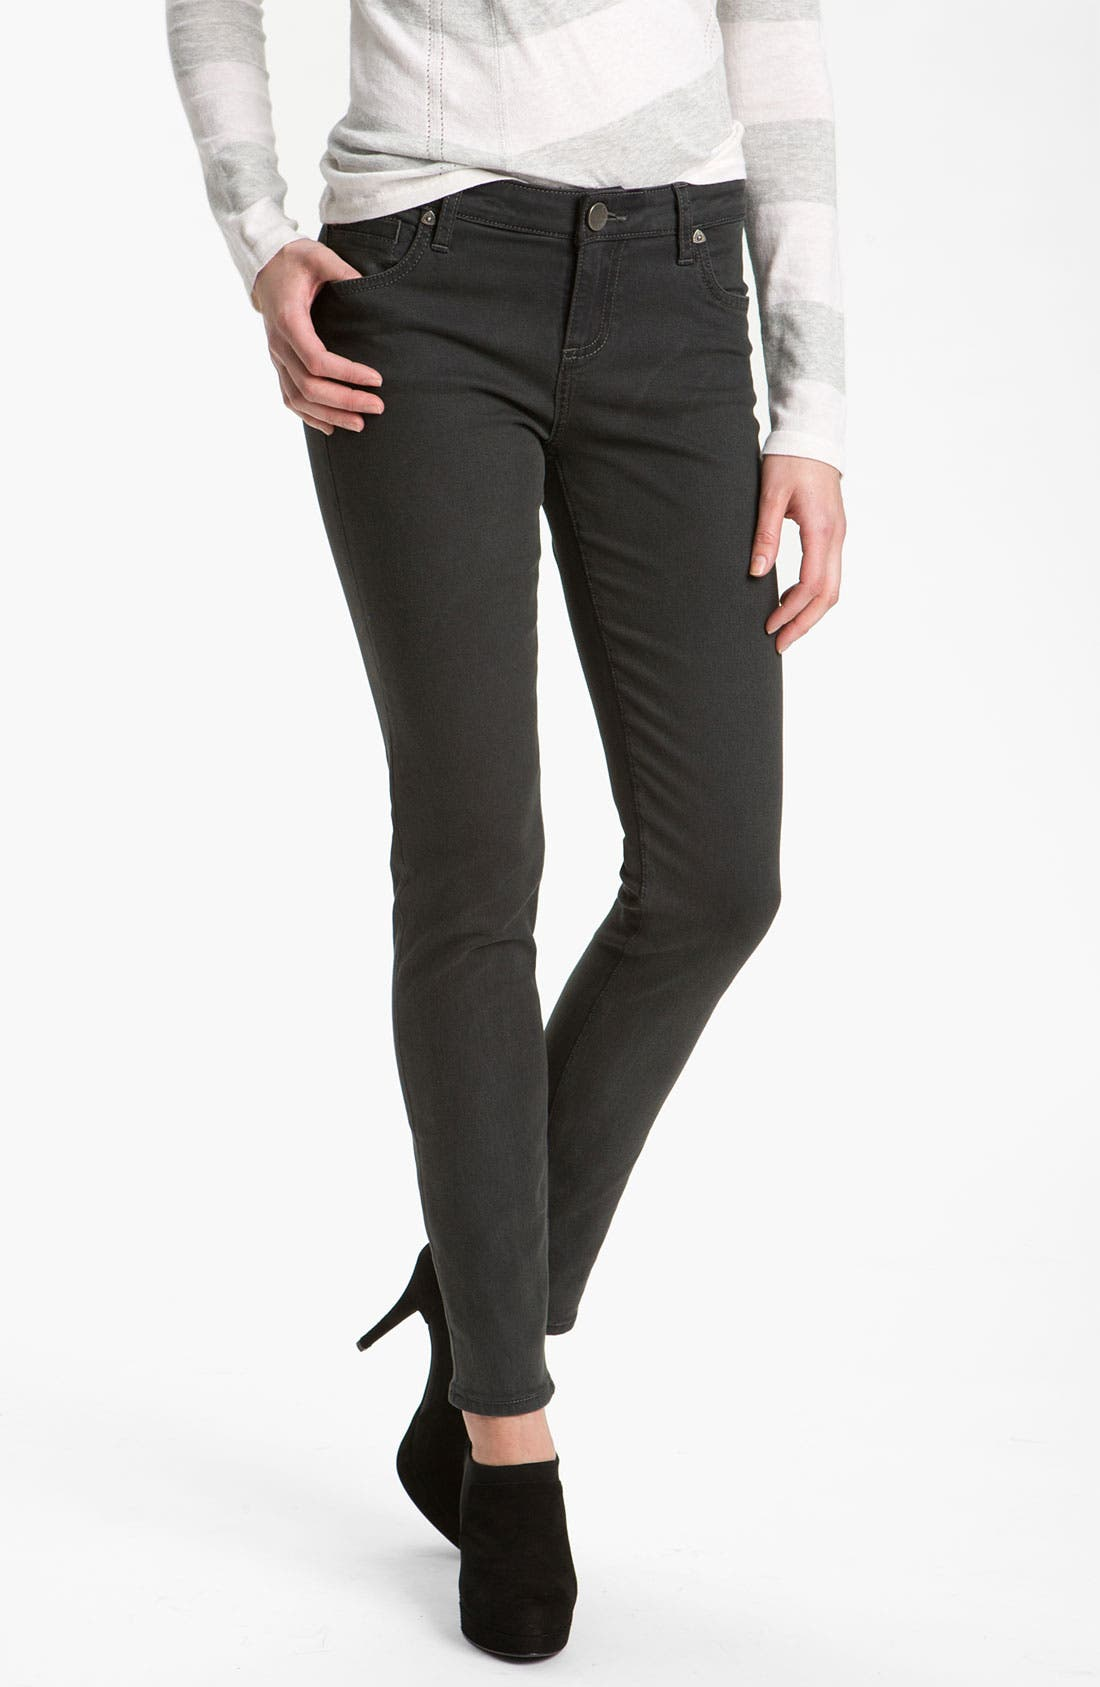 Alternate Image 1 Selected - KUT from the Kloth 'Diana' Skinny Jeans (Graceful Wash)